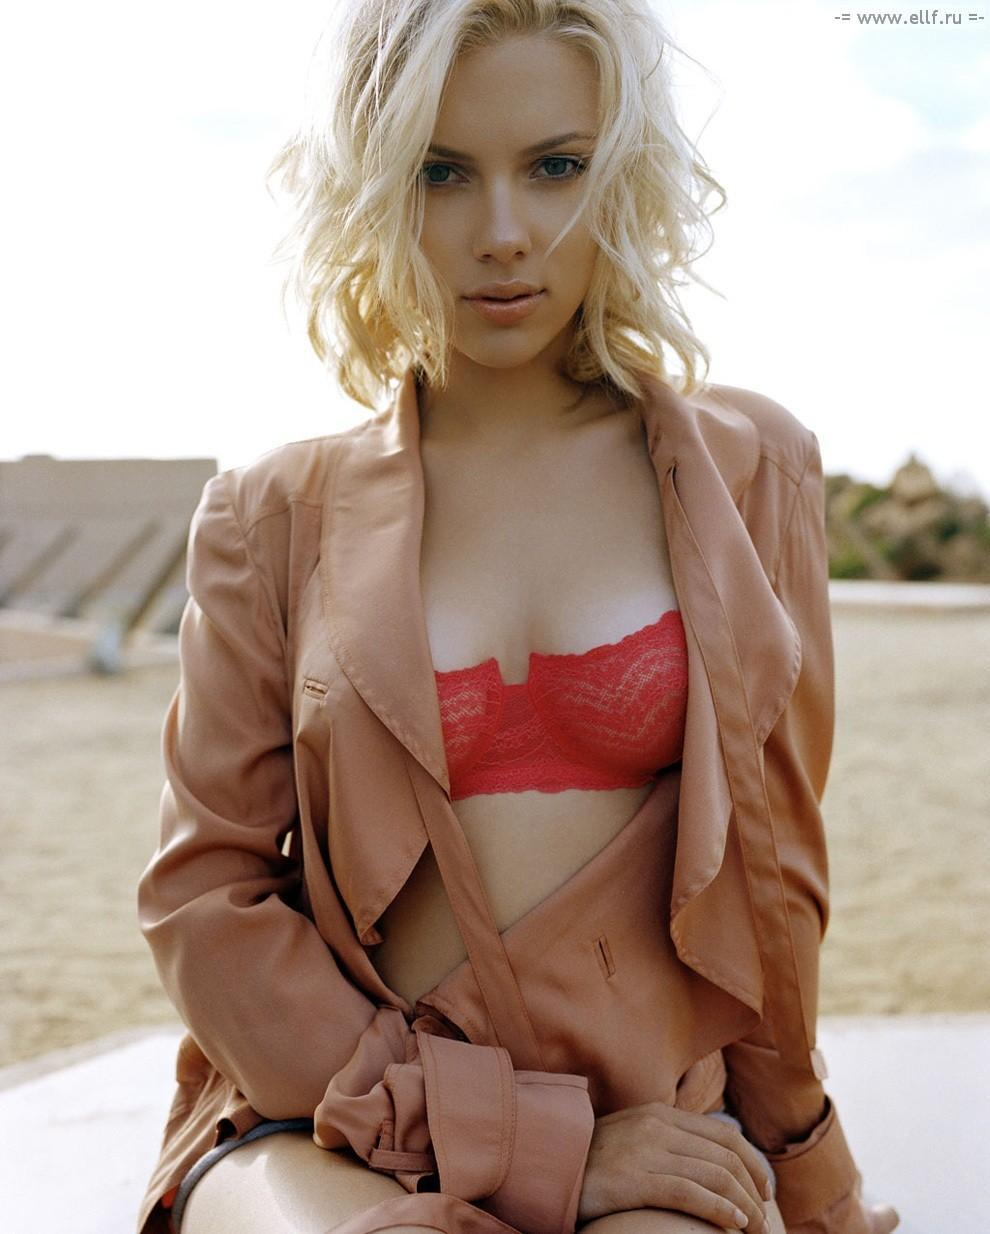 http://us.cdn003.fansshare.com/celebrity/photos/934_scarlett-johansson-hot-photos-hot-1036060737.jpg